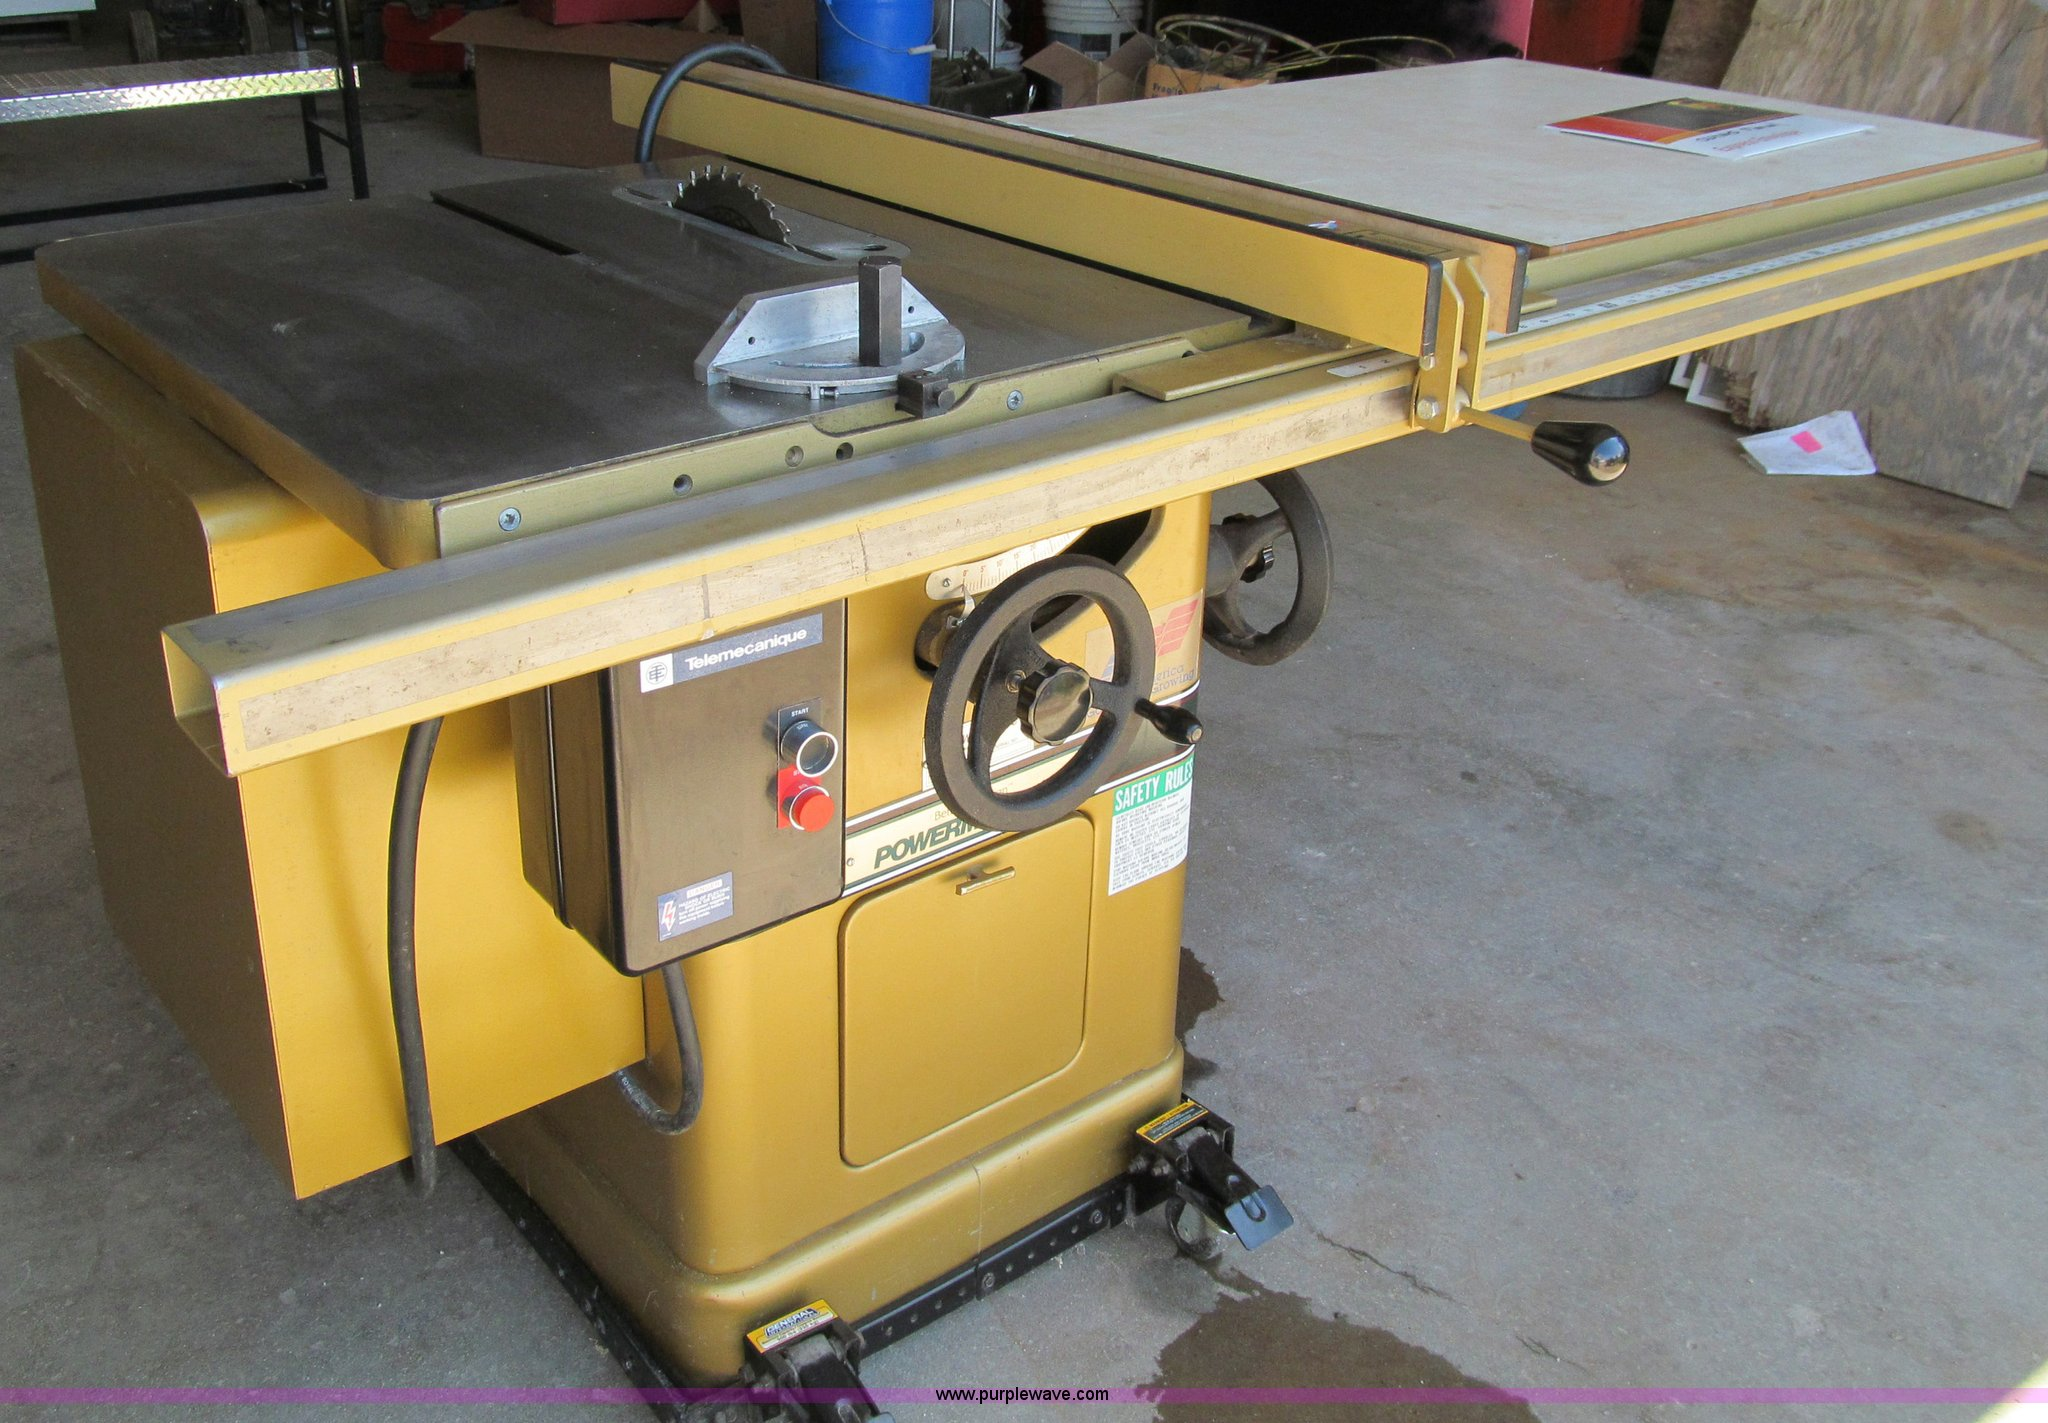 powermatic 66 table saw item a8358 sold wednesday july rh purplewave com powermatic table saw pm2000 powermatic table saw specs